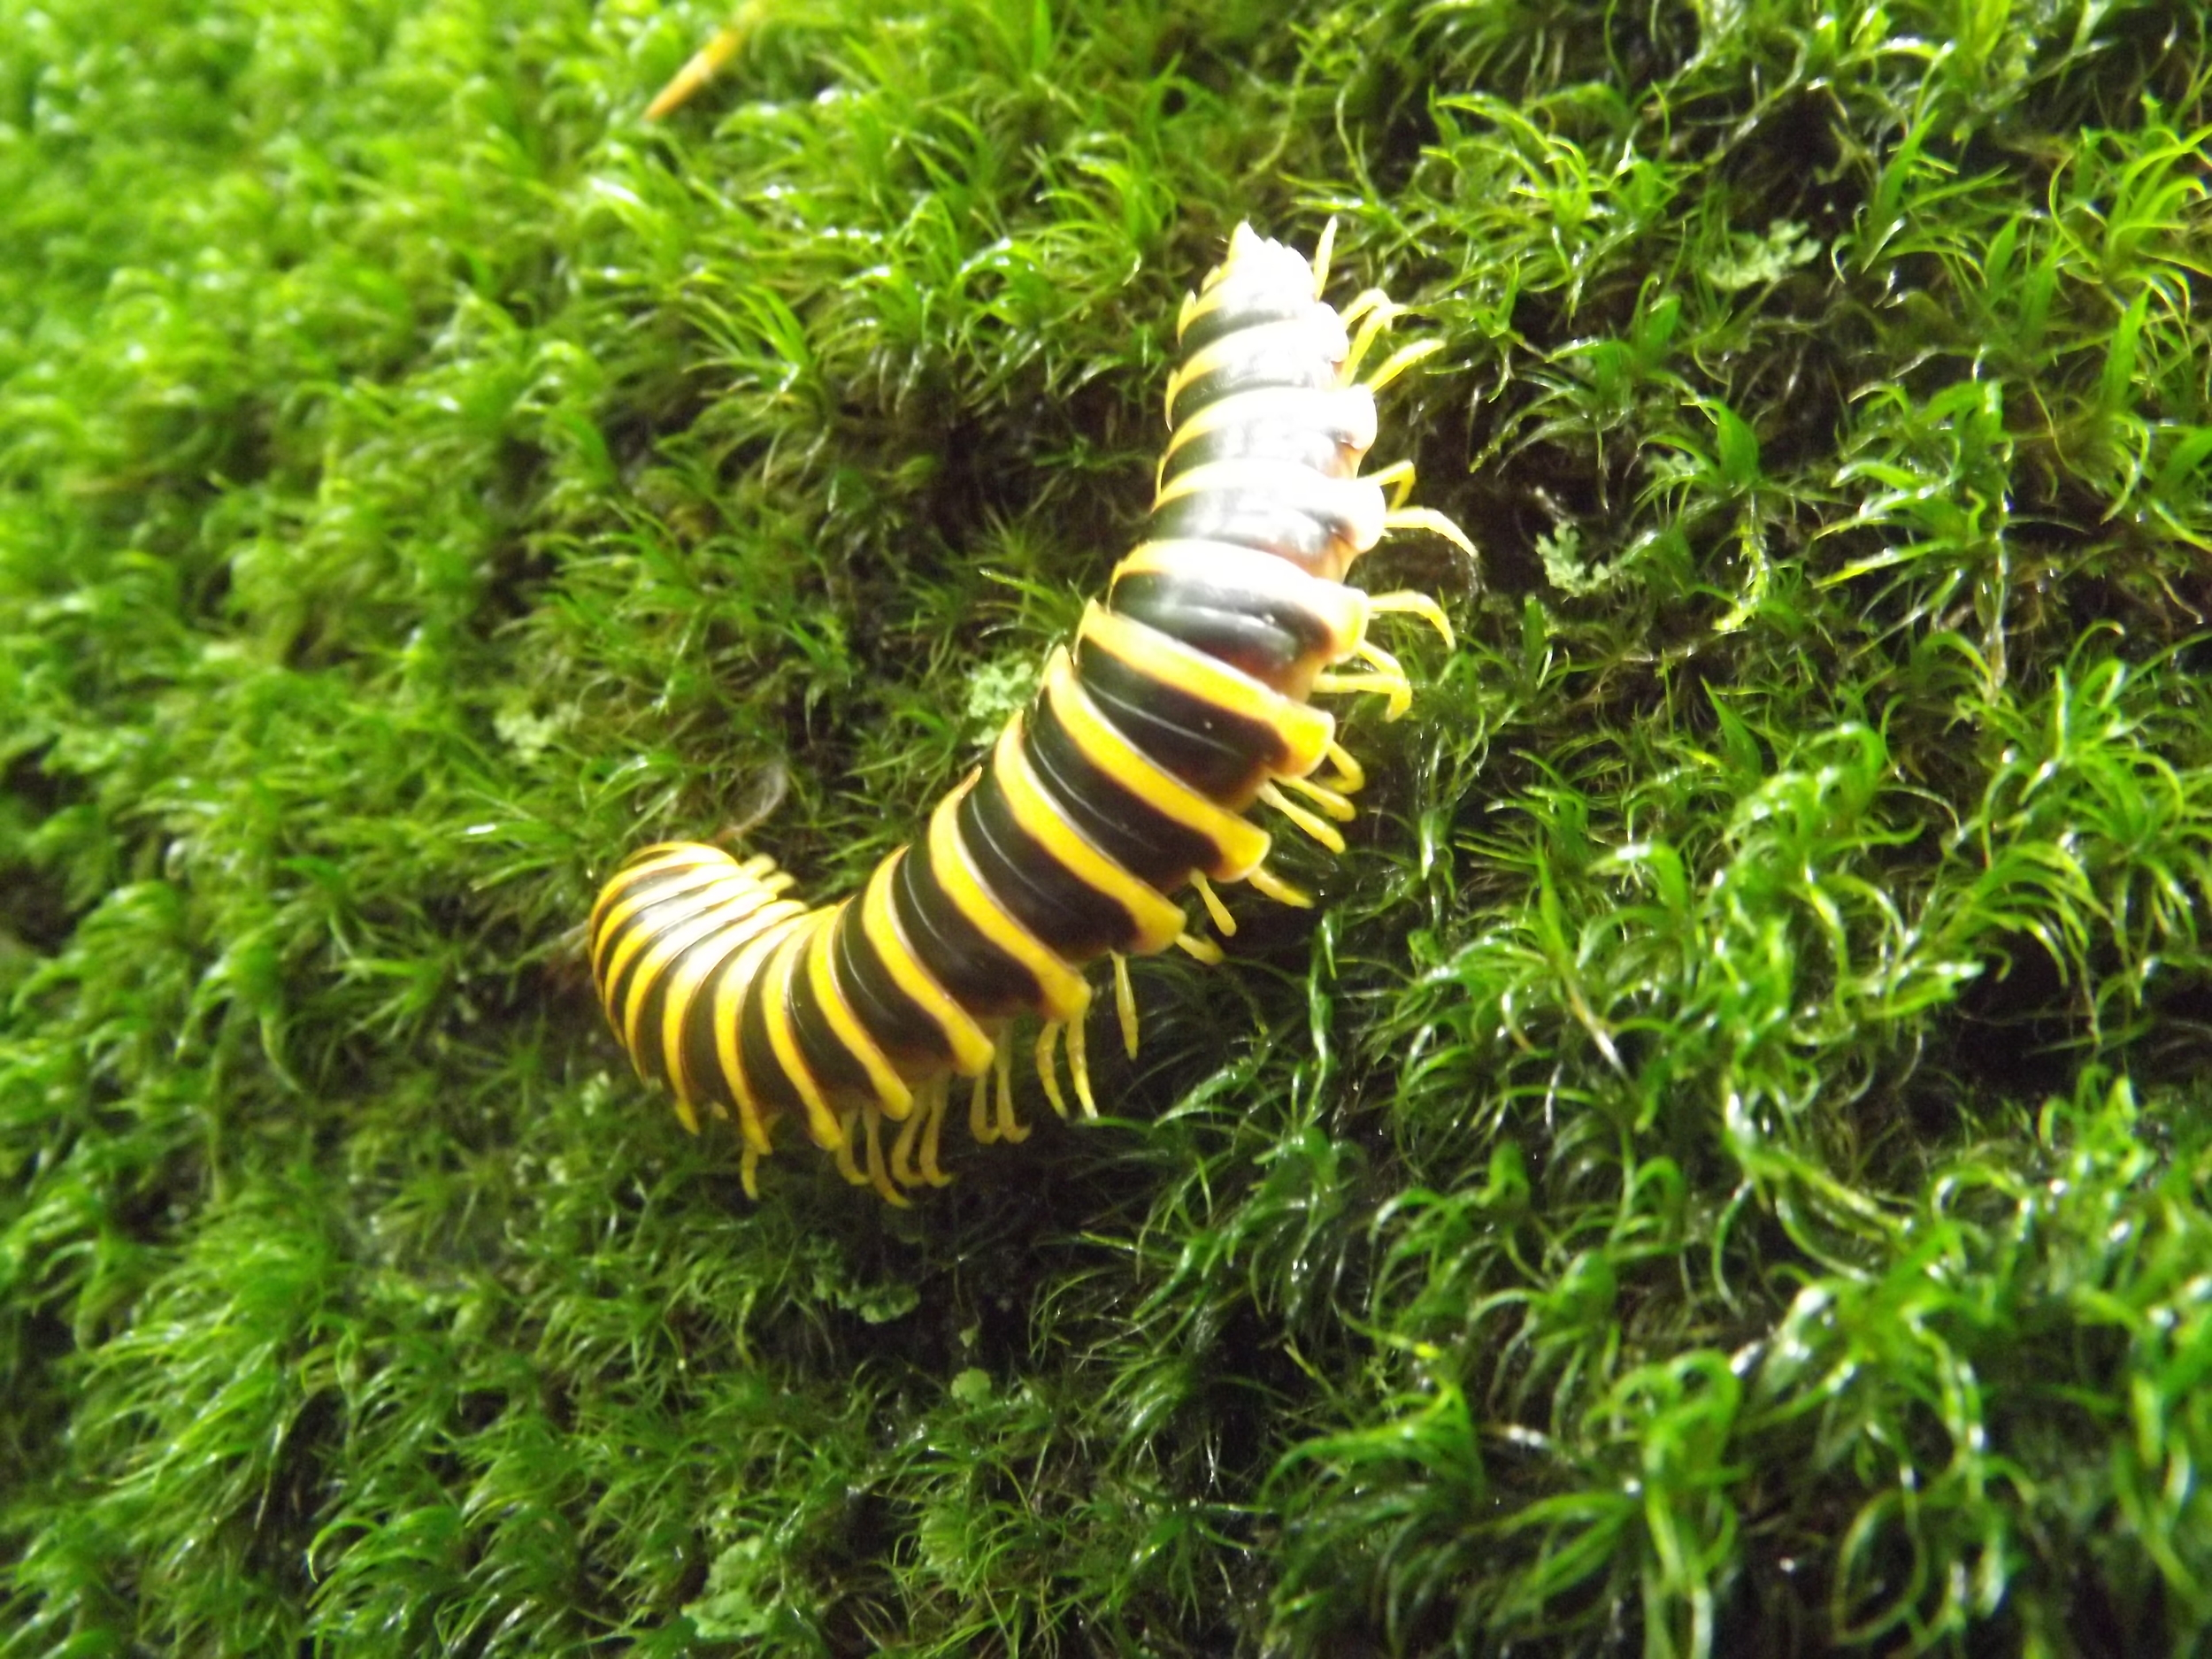 Apheloria Millipede ( Apheloria virginiensis ) - This is the first I've photographed an Apheloria Millipede and I'm almost certain of my identification. This milipede was walking across some moss and wouldn't stop so the picture is a little out of focus. But I wanted to include it in this post since I saw three other Apheloria Millipedes on Sunday, so they must like wet weather too.